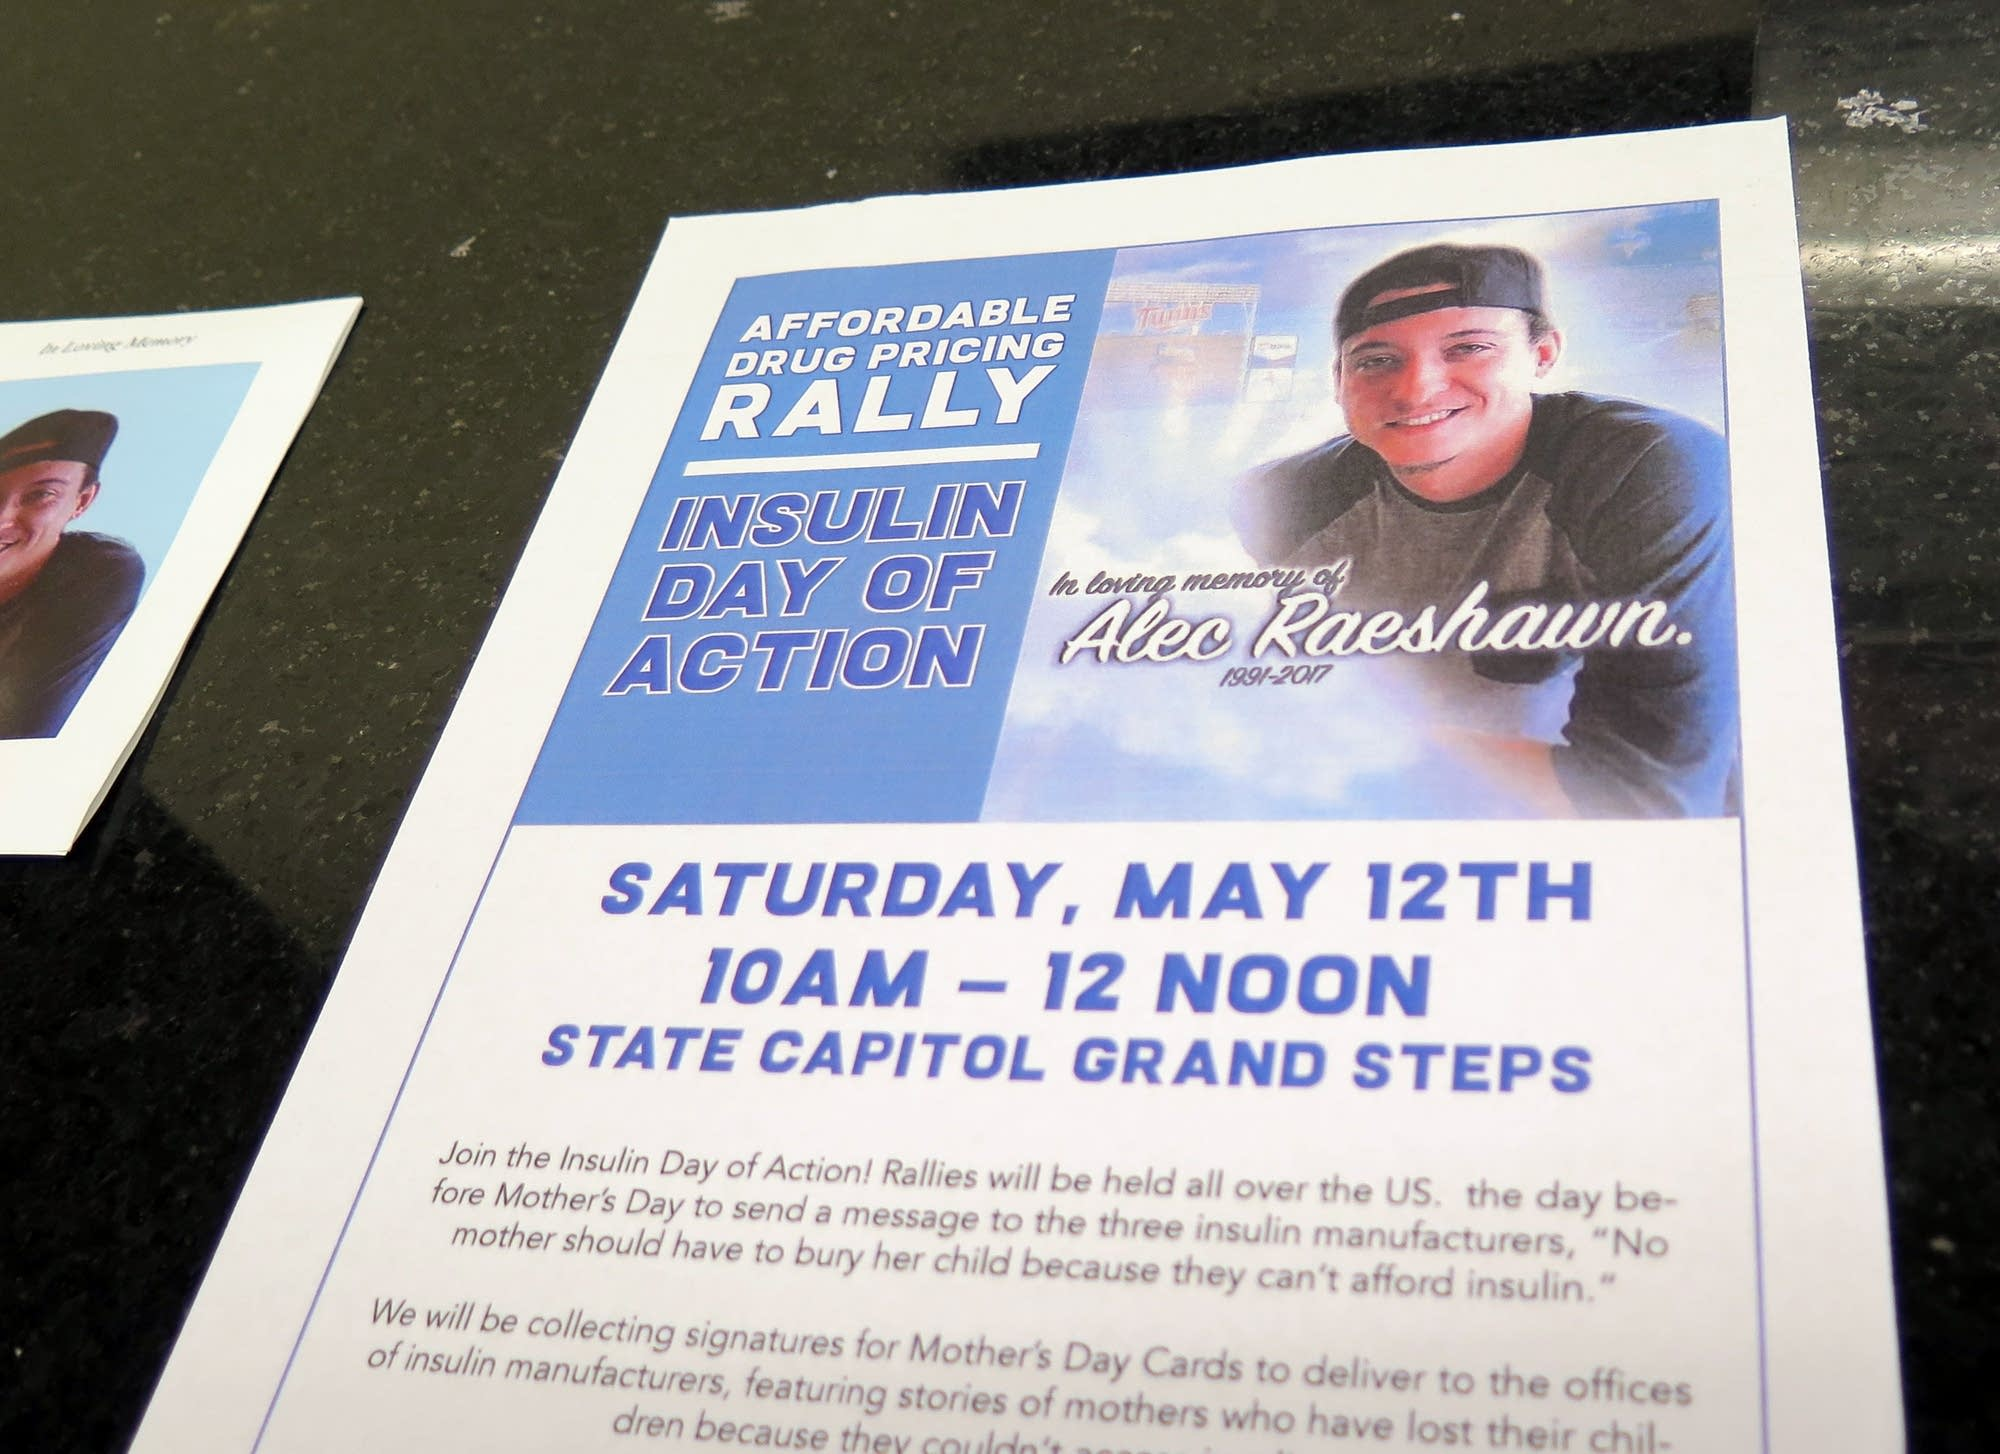 There will be a rally Saturday at the State Capitol for affordable drugs.